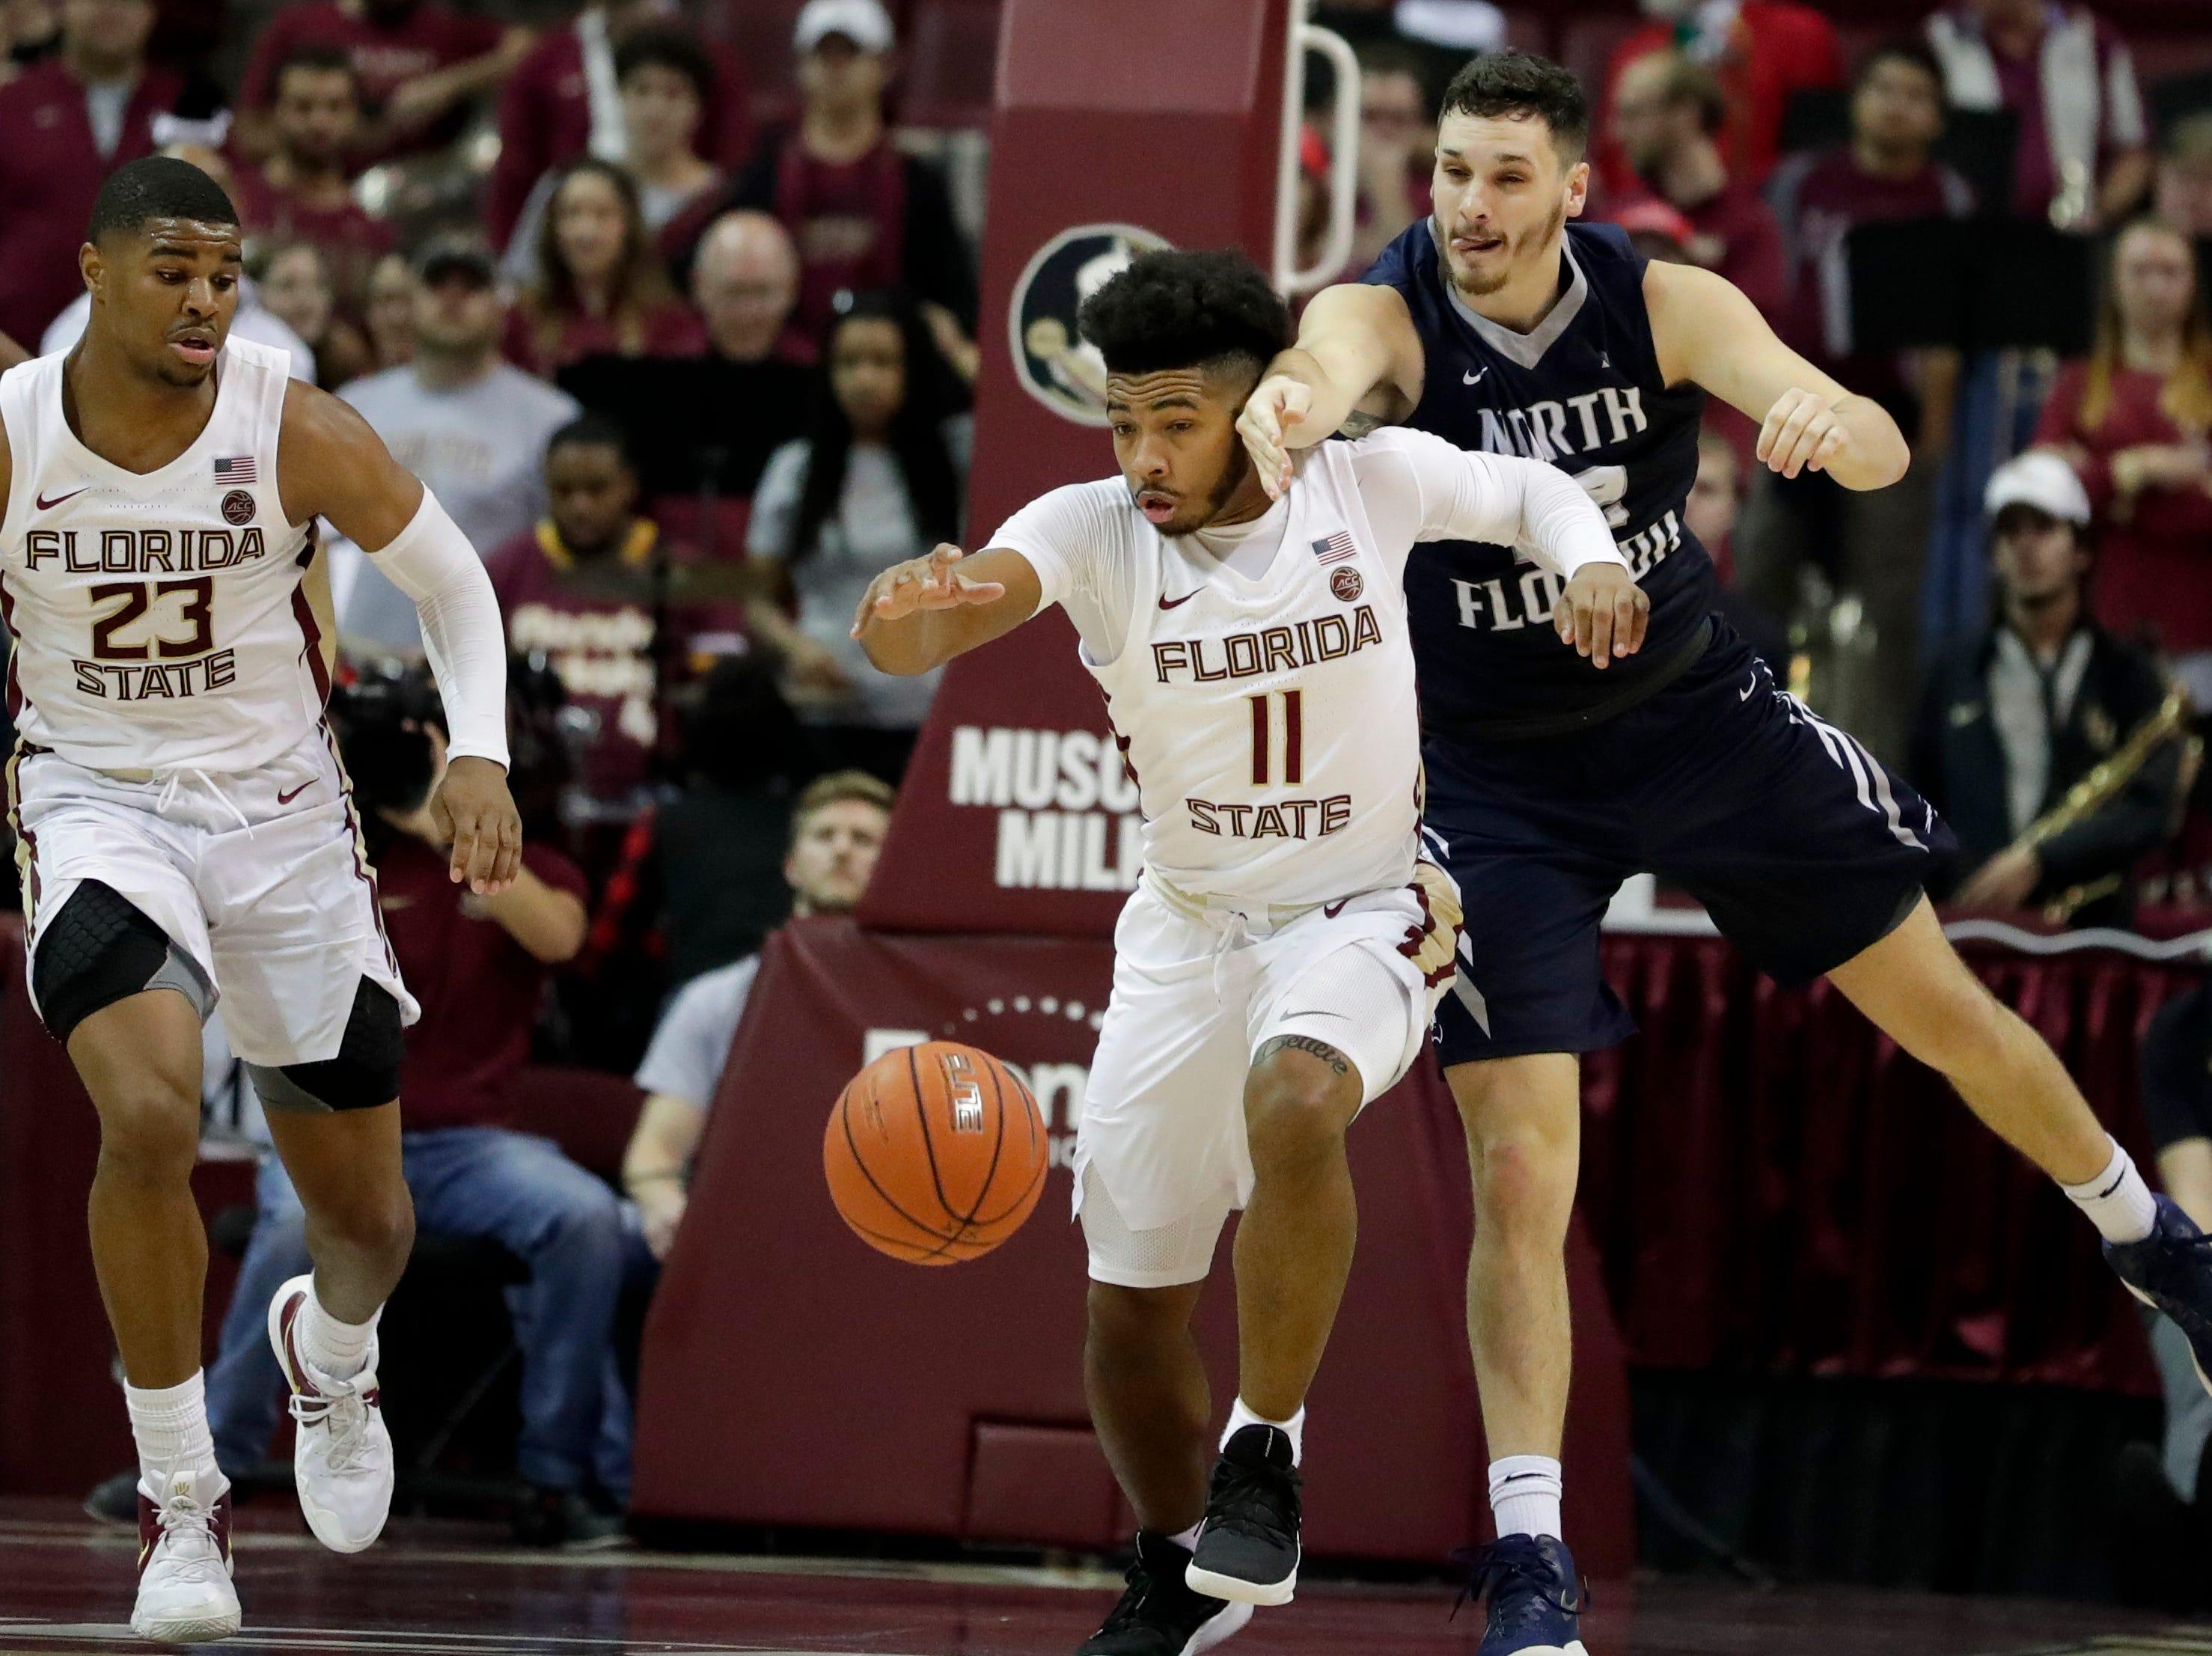 Florida State Seminoles guard David Nichols (11) reaches for a loose ball during a game between Florida State University and the University of North Florida at Donald L. Tucker Civic Center in Tallahassee, Fla. Wednesday, Dec. 19, 2018.